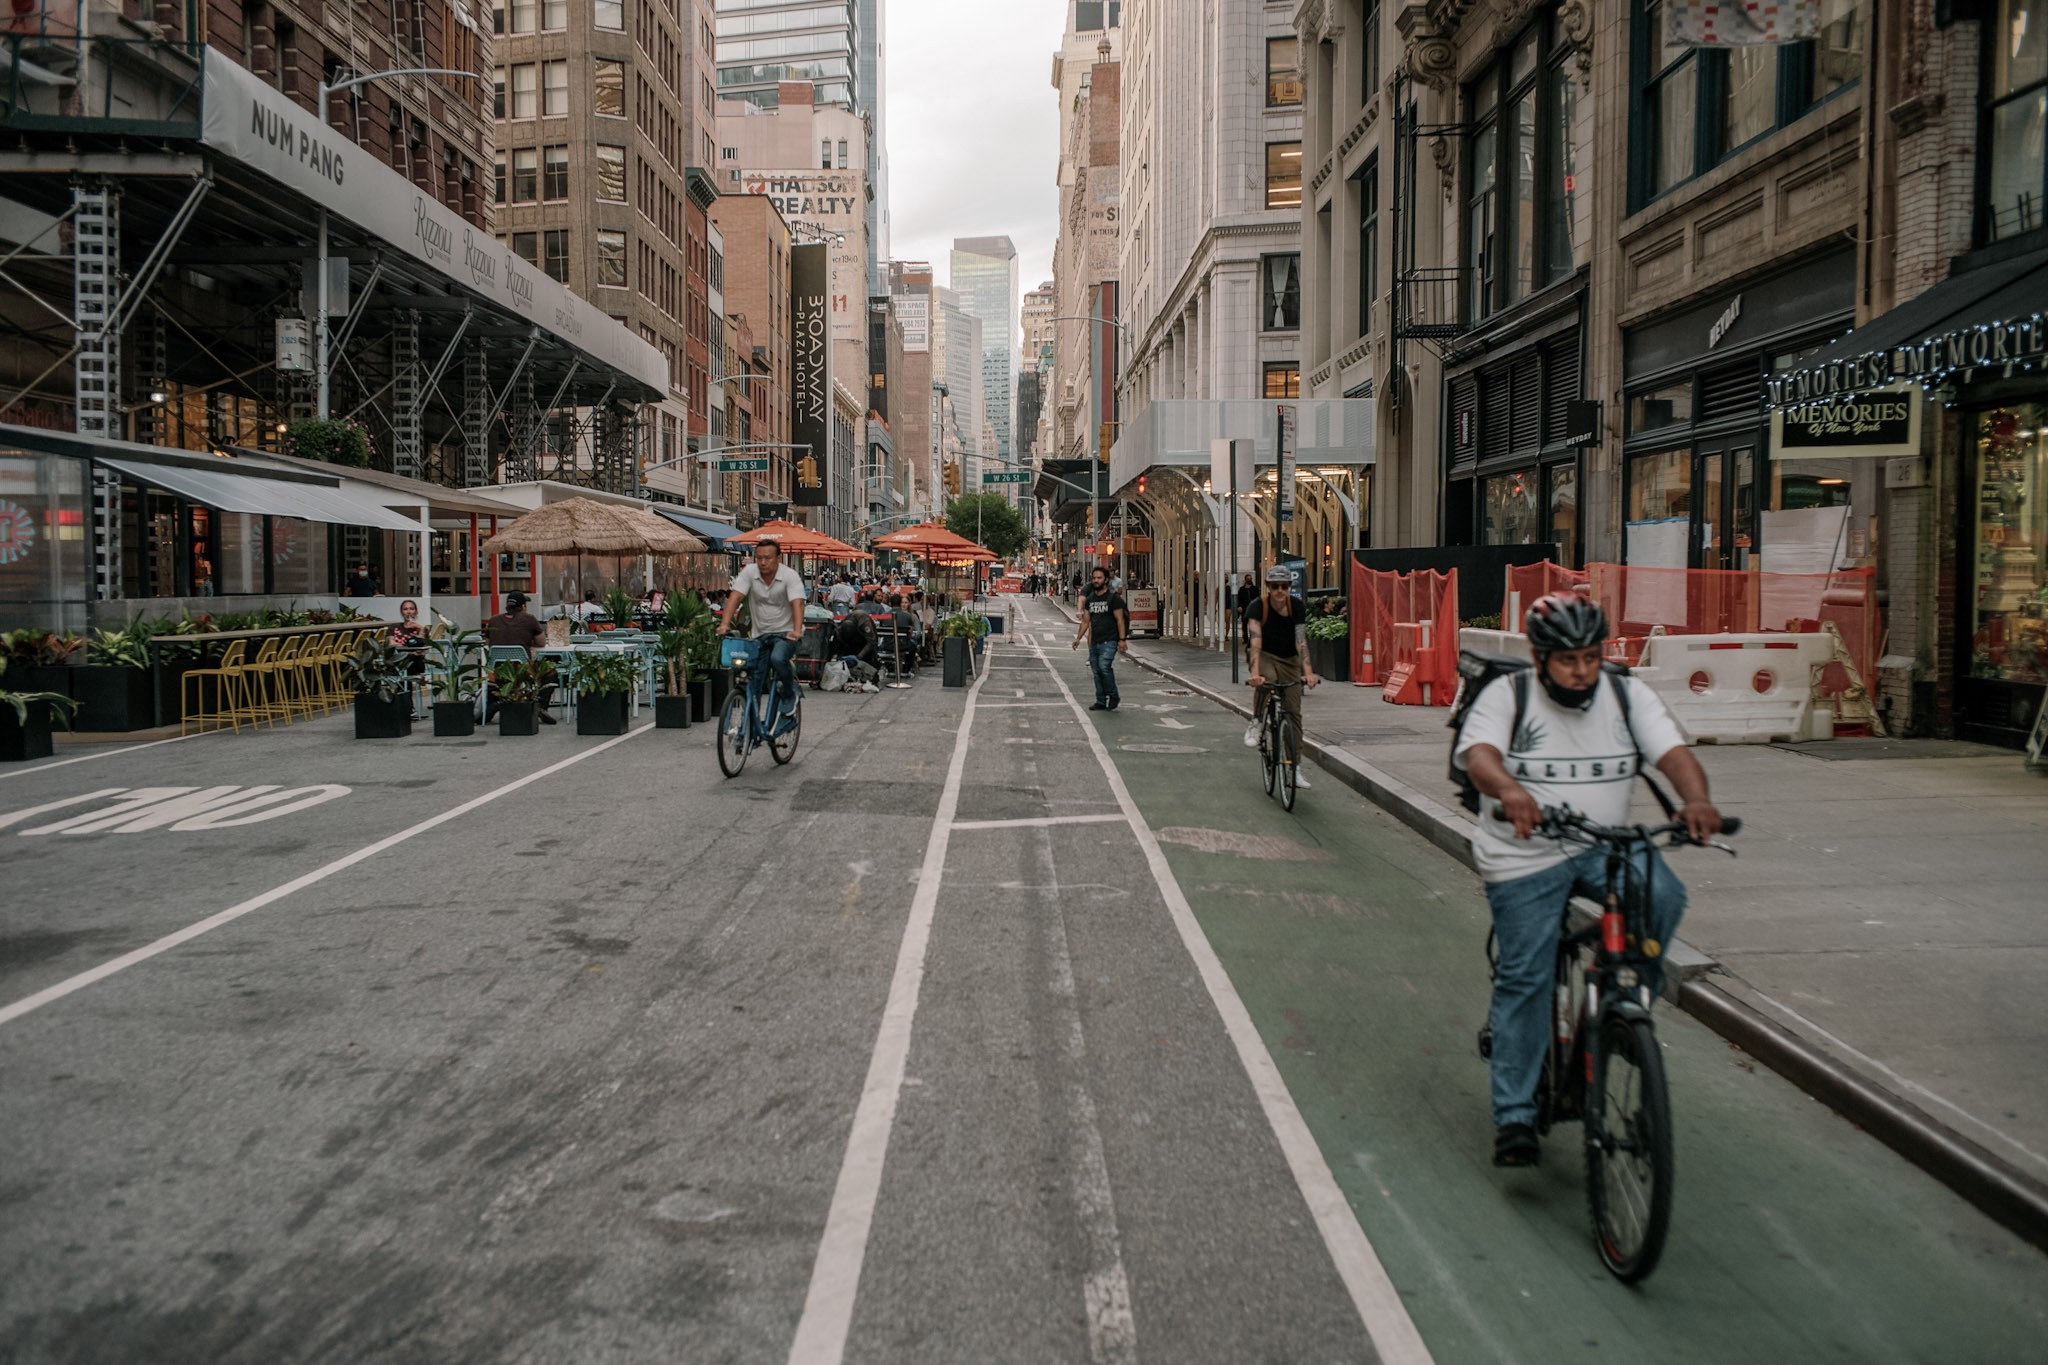 People bike down a green bike lane in Midtown NYC, while people sit in the car lane, dining at open-air restaurants.